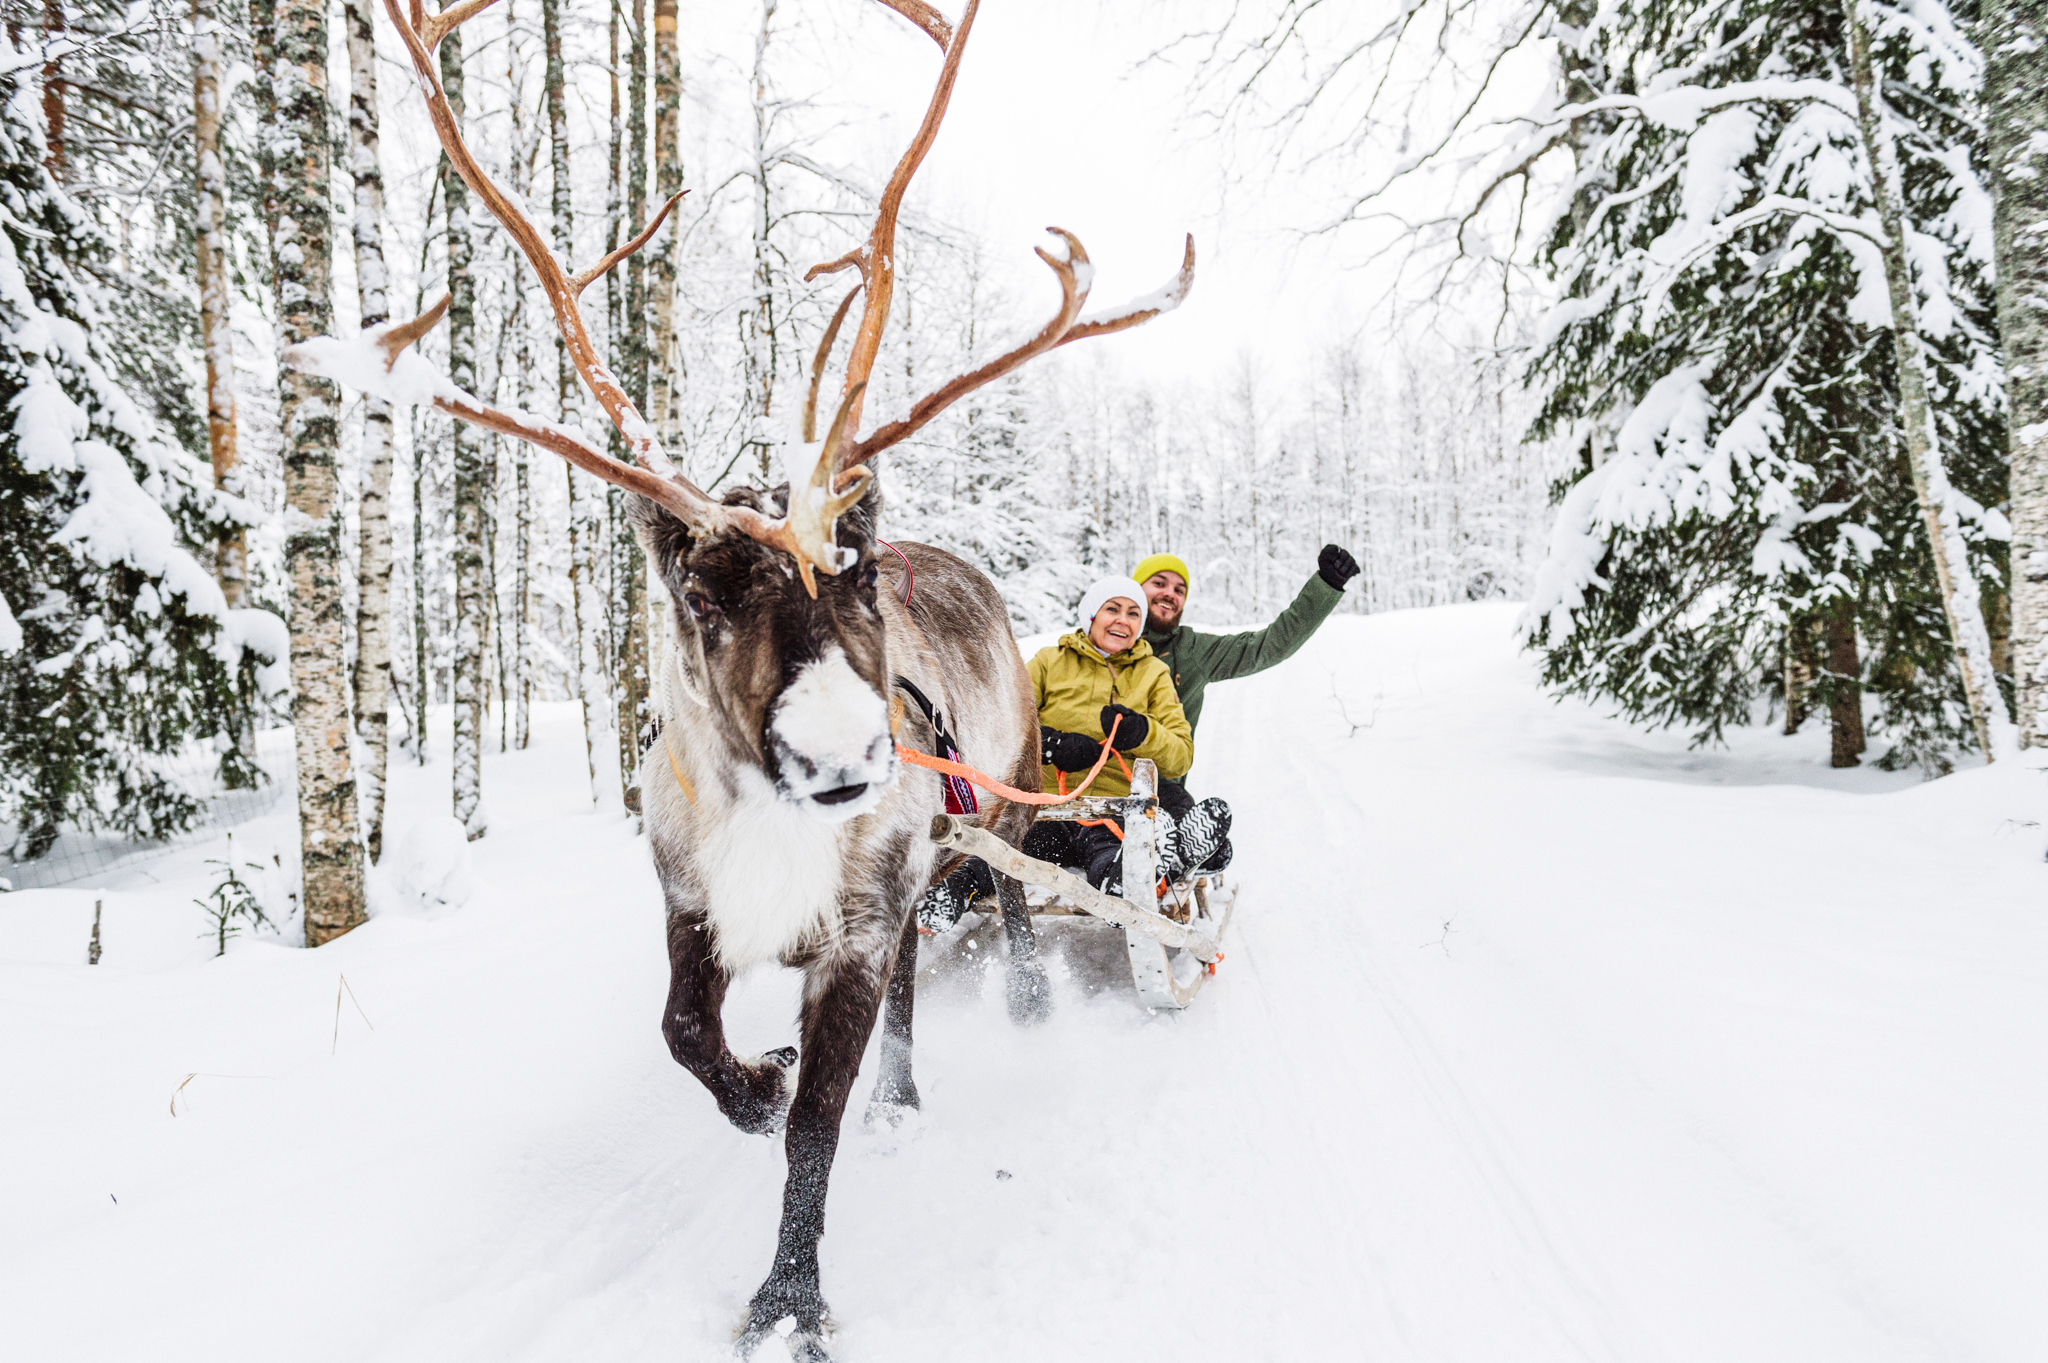 reindeer pulling sleight with people in snowy forest